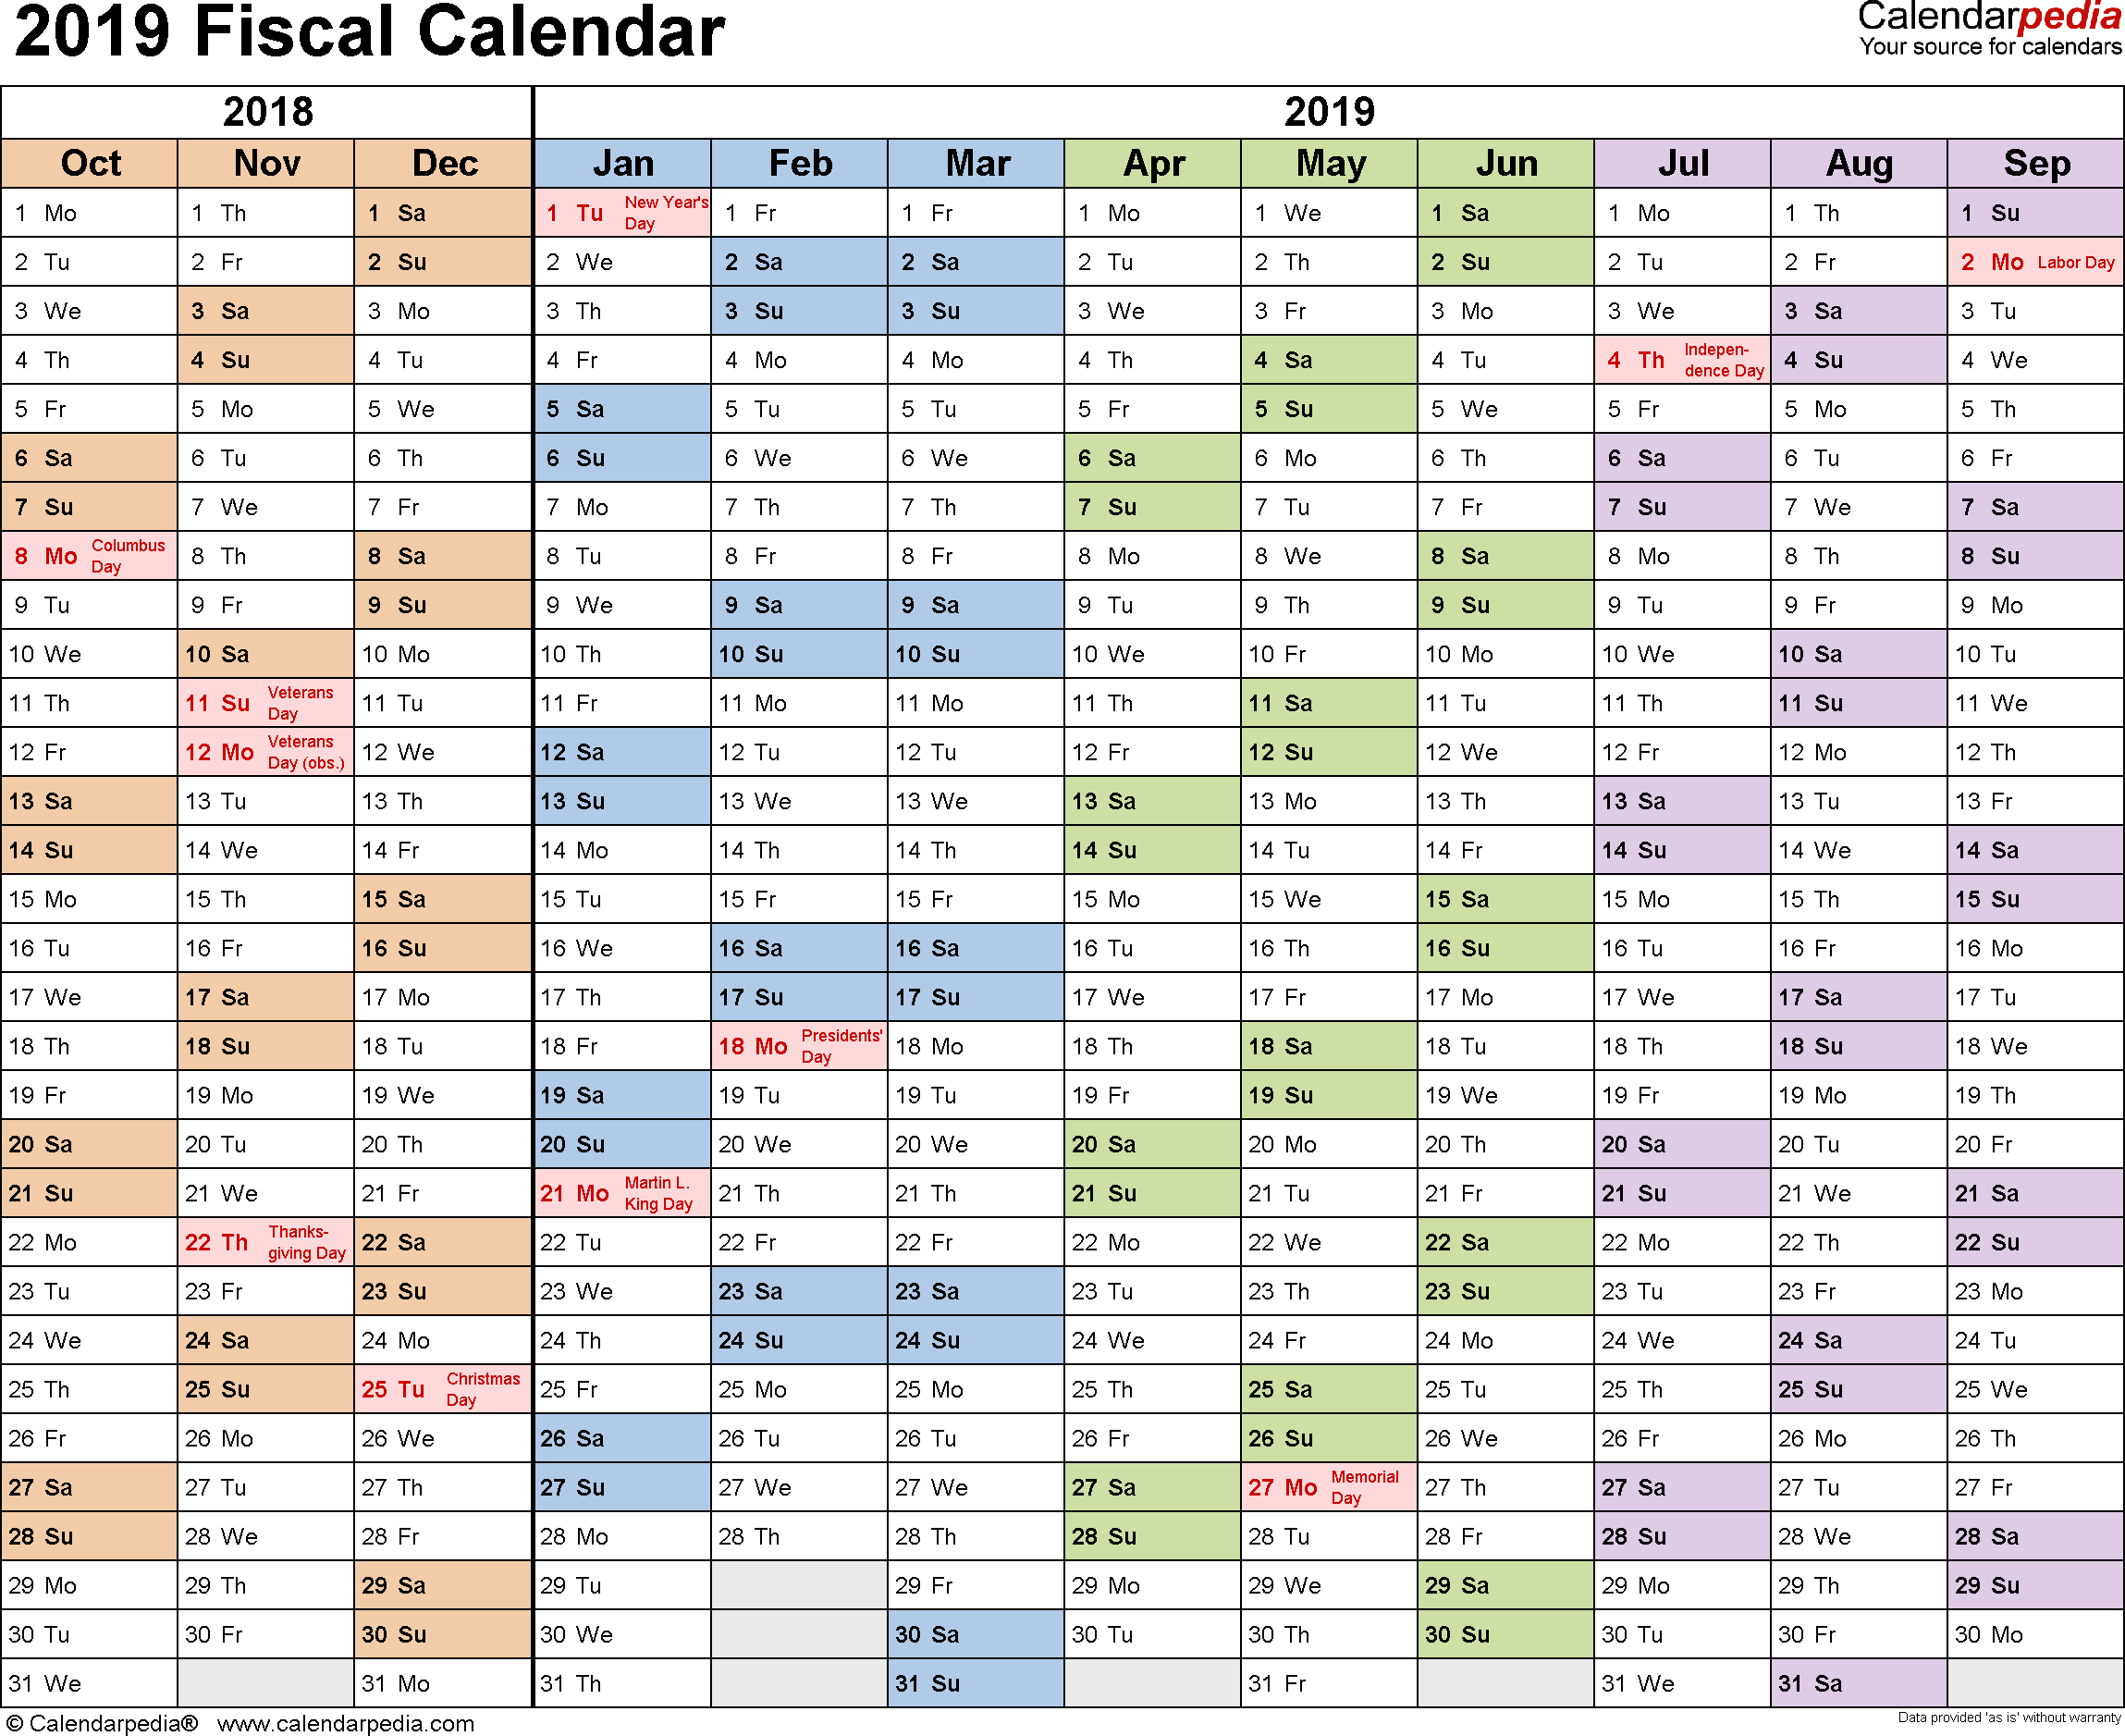 template 1 fiscal year calendar 2019 for excel landscape orientation months horizontally